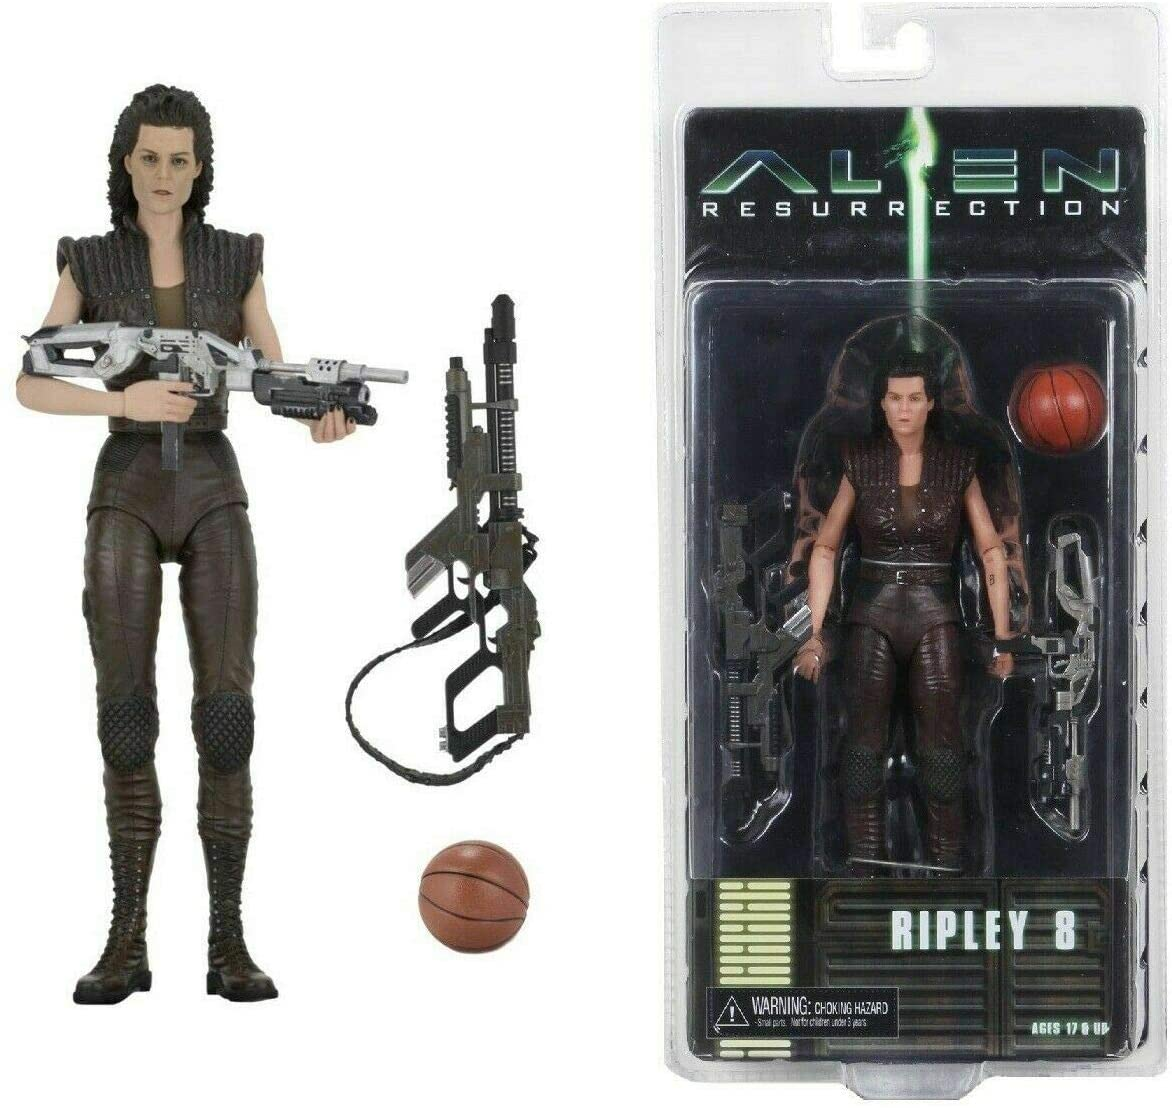 NECA Aliens - Alien Resurrection Ripley 8 Action Figure